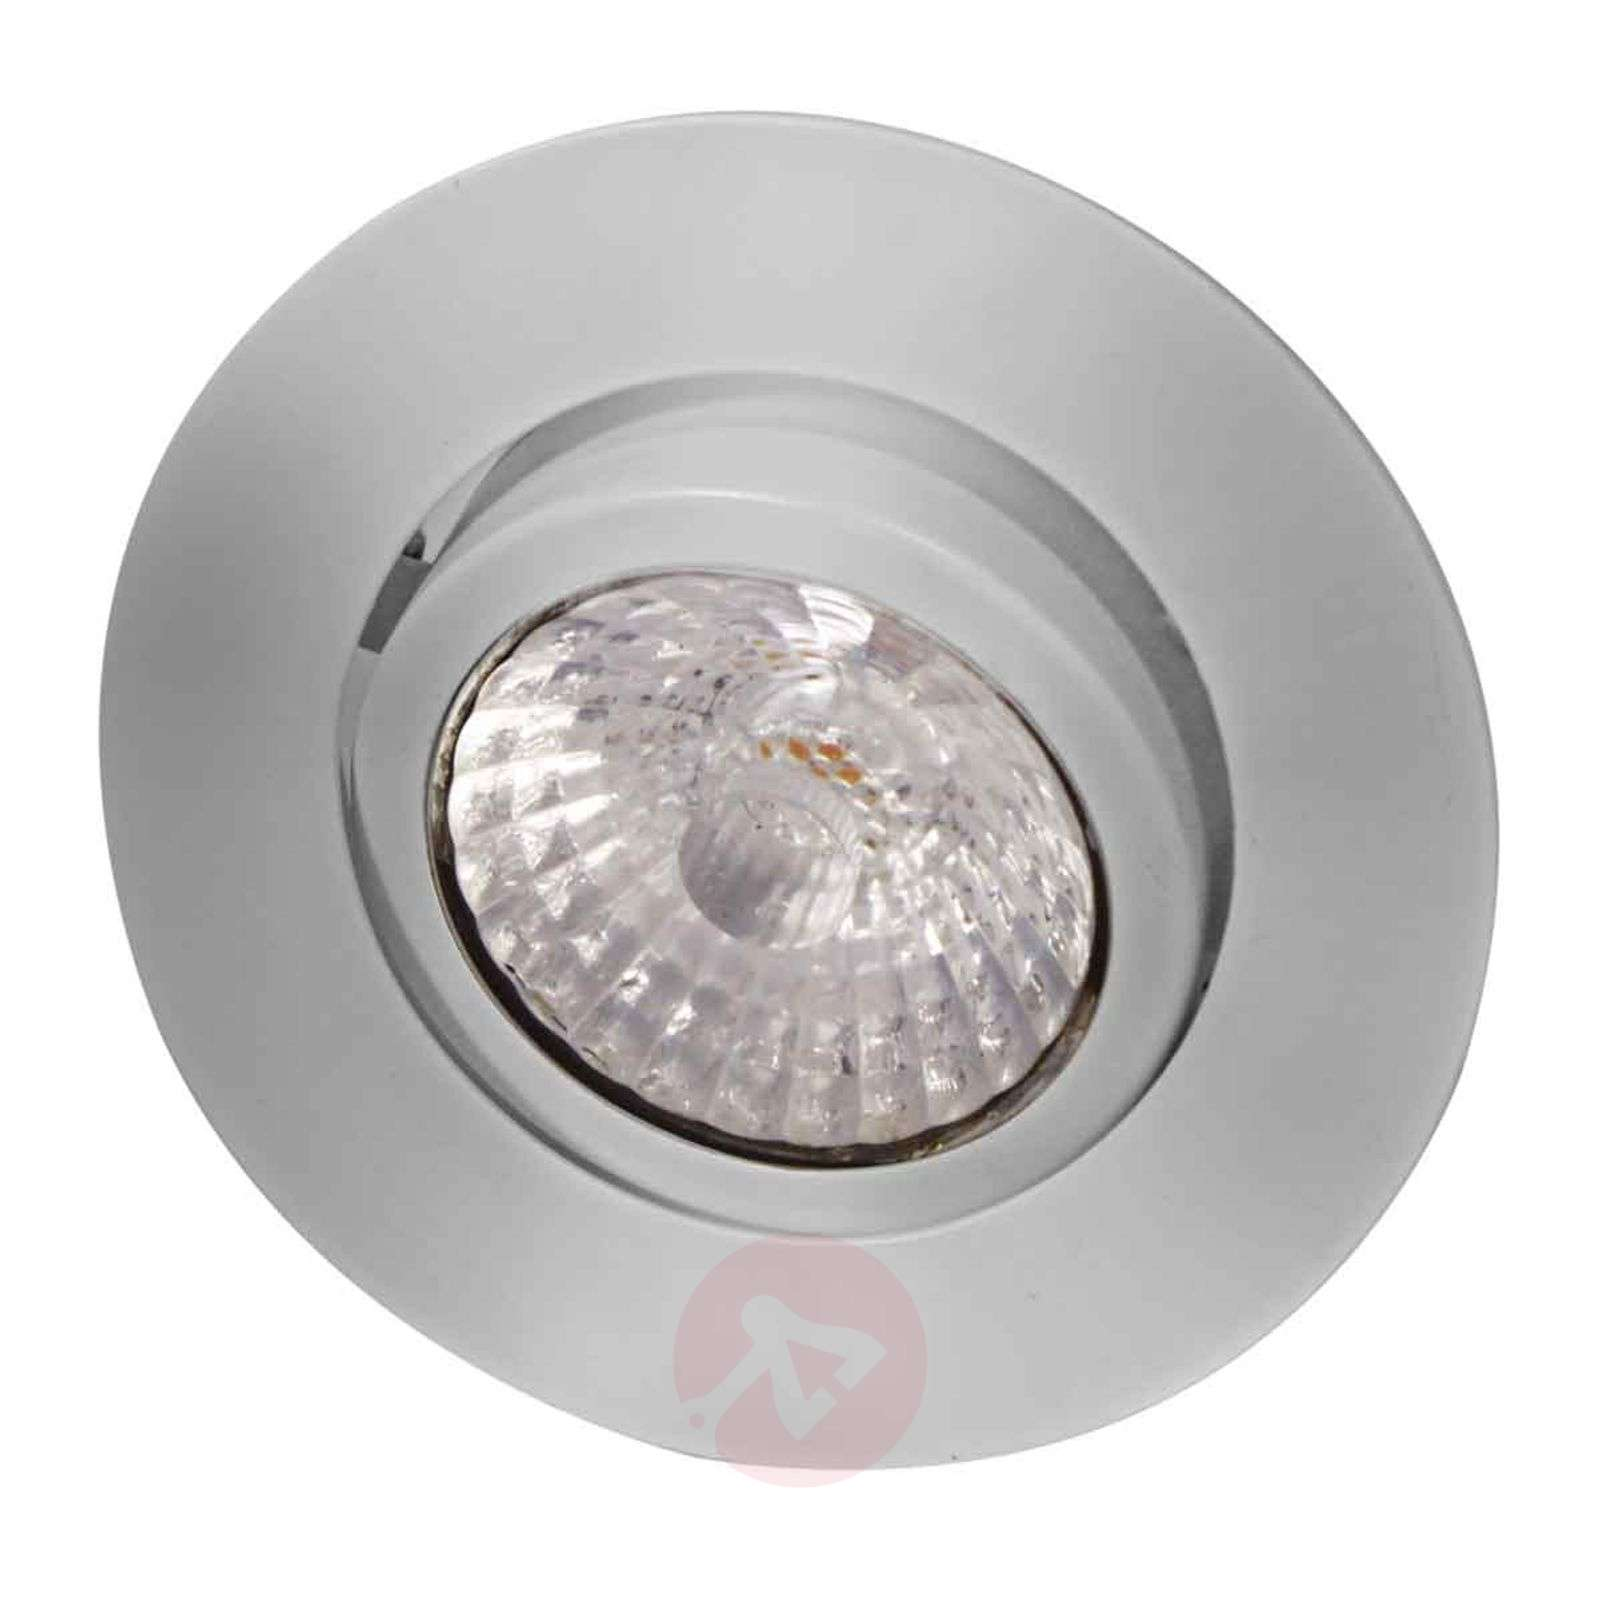 Projecteur encastré LED Rico, dim to warm-6530229X-01